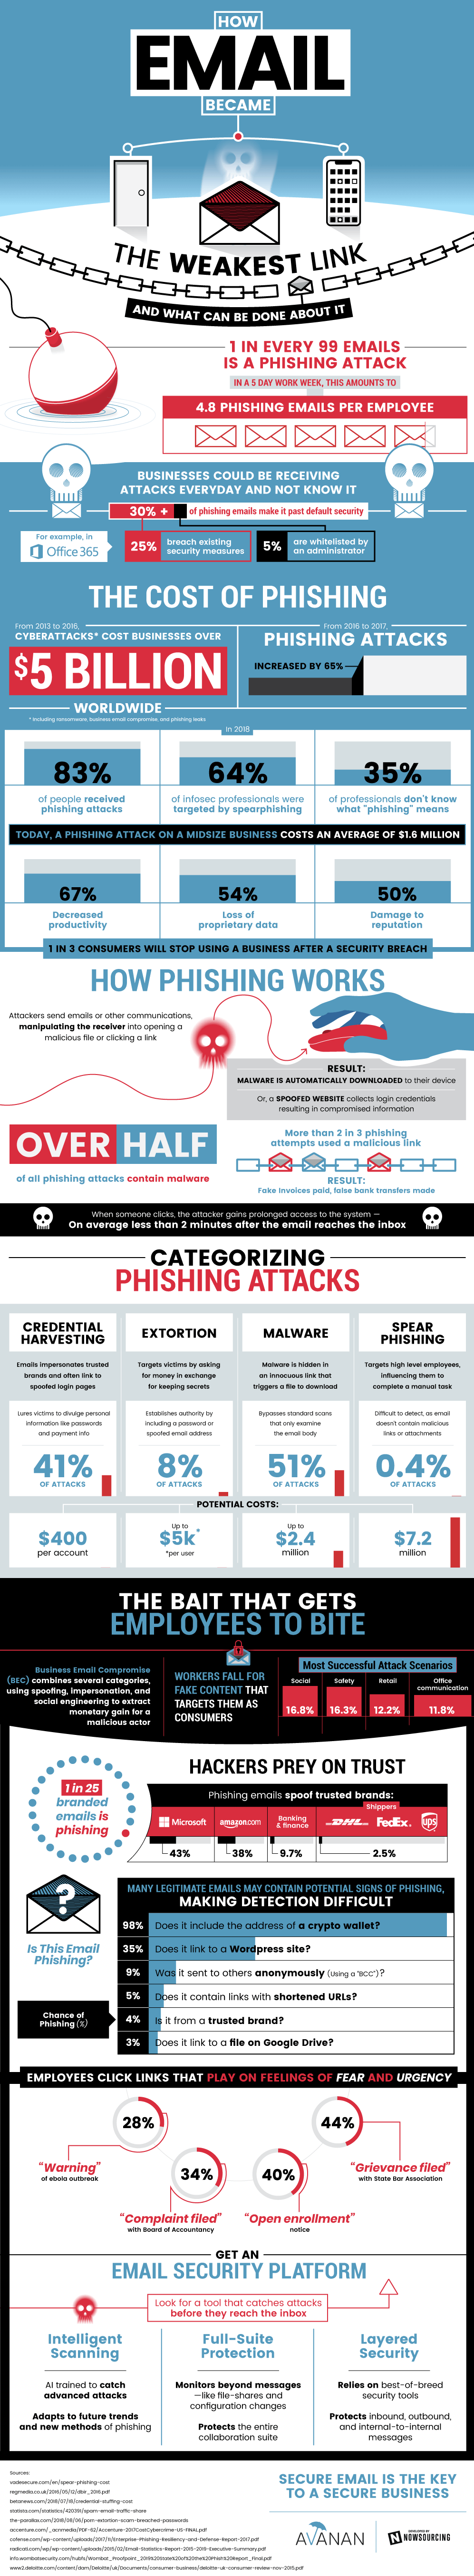 How email became the most vulnerable link #infographic